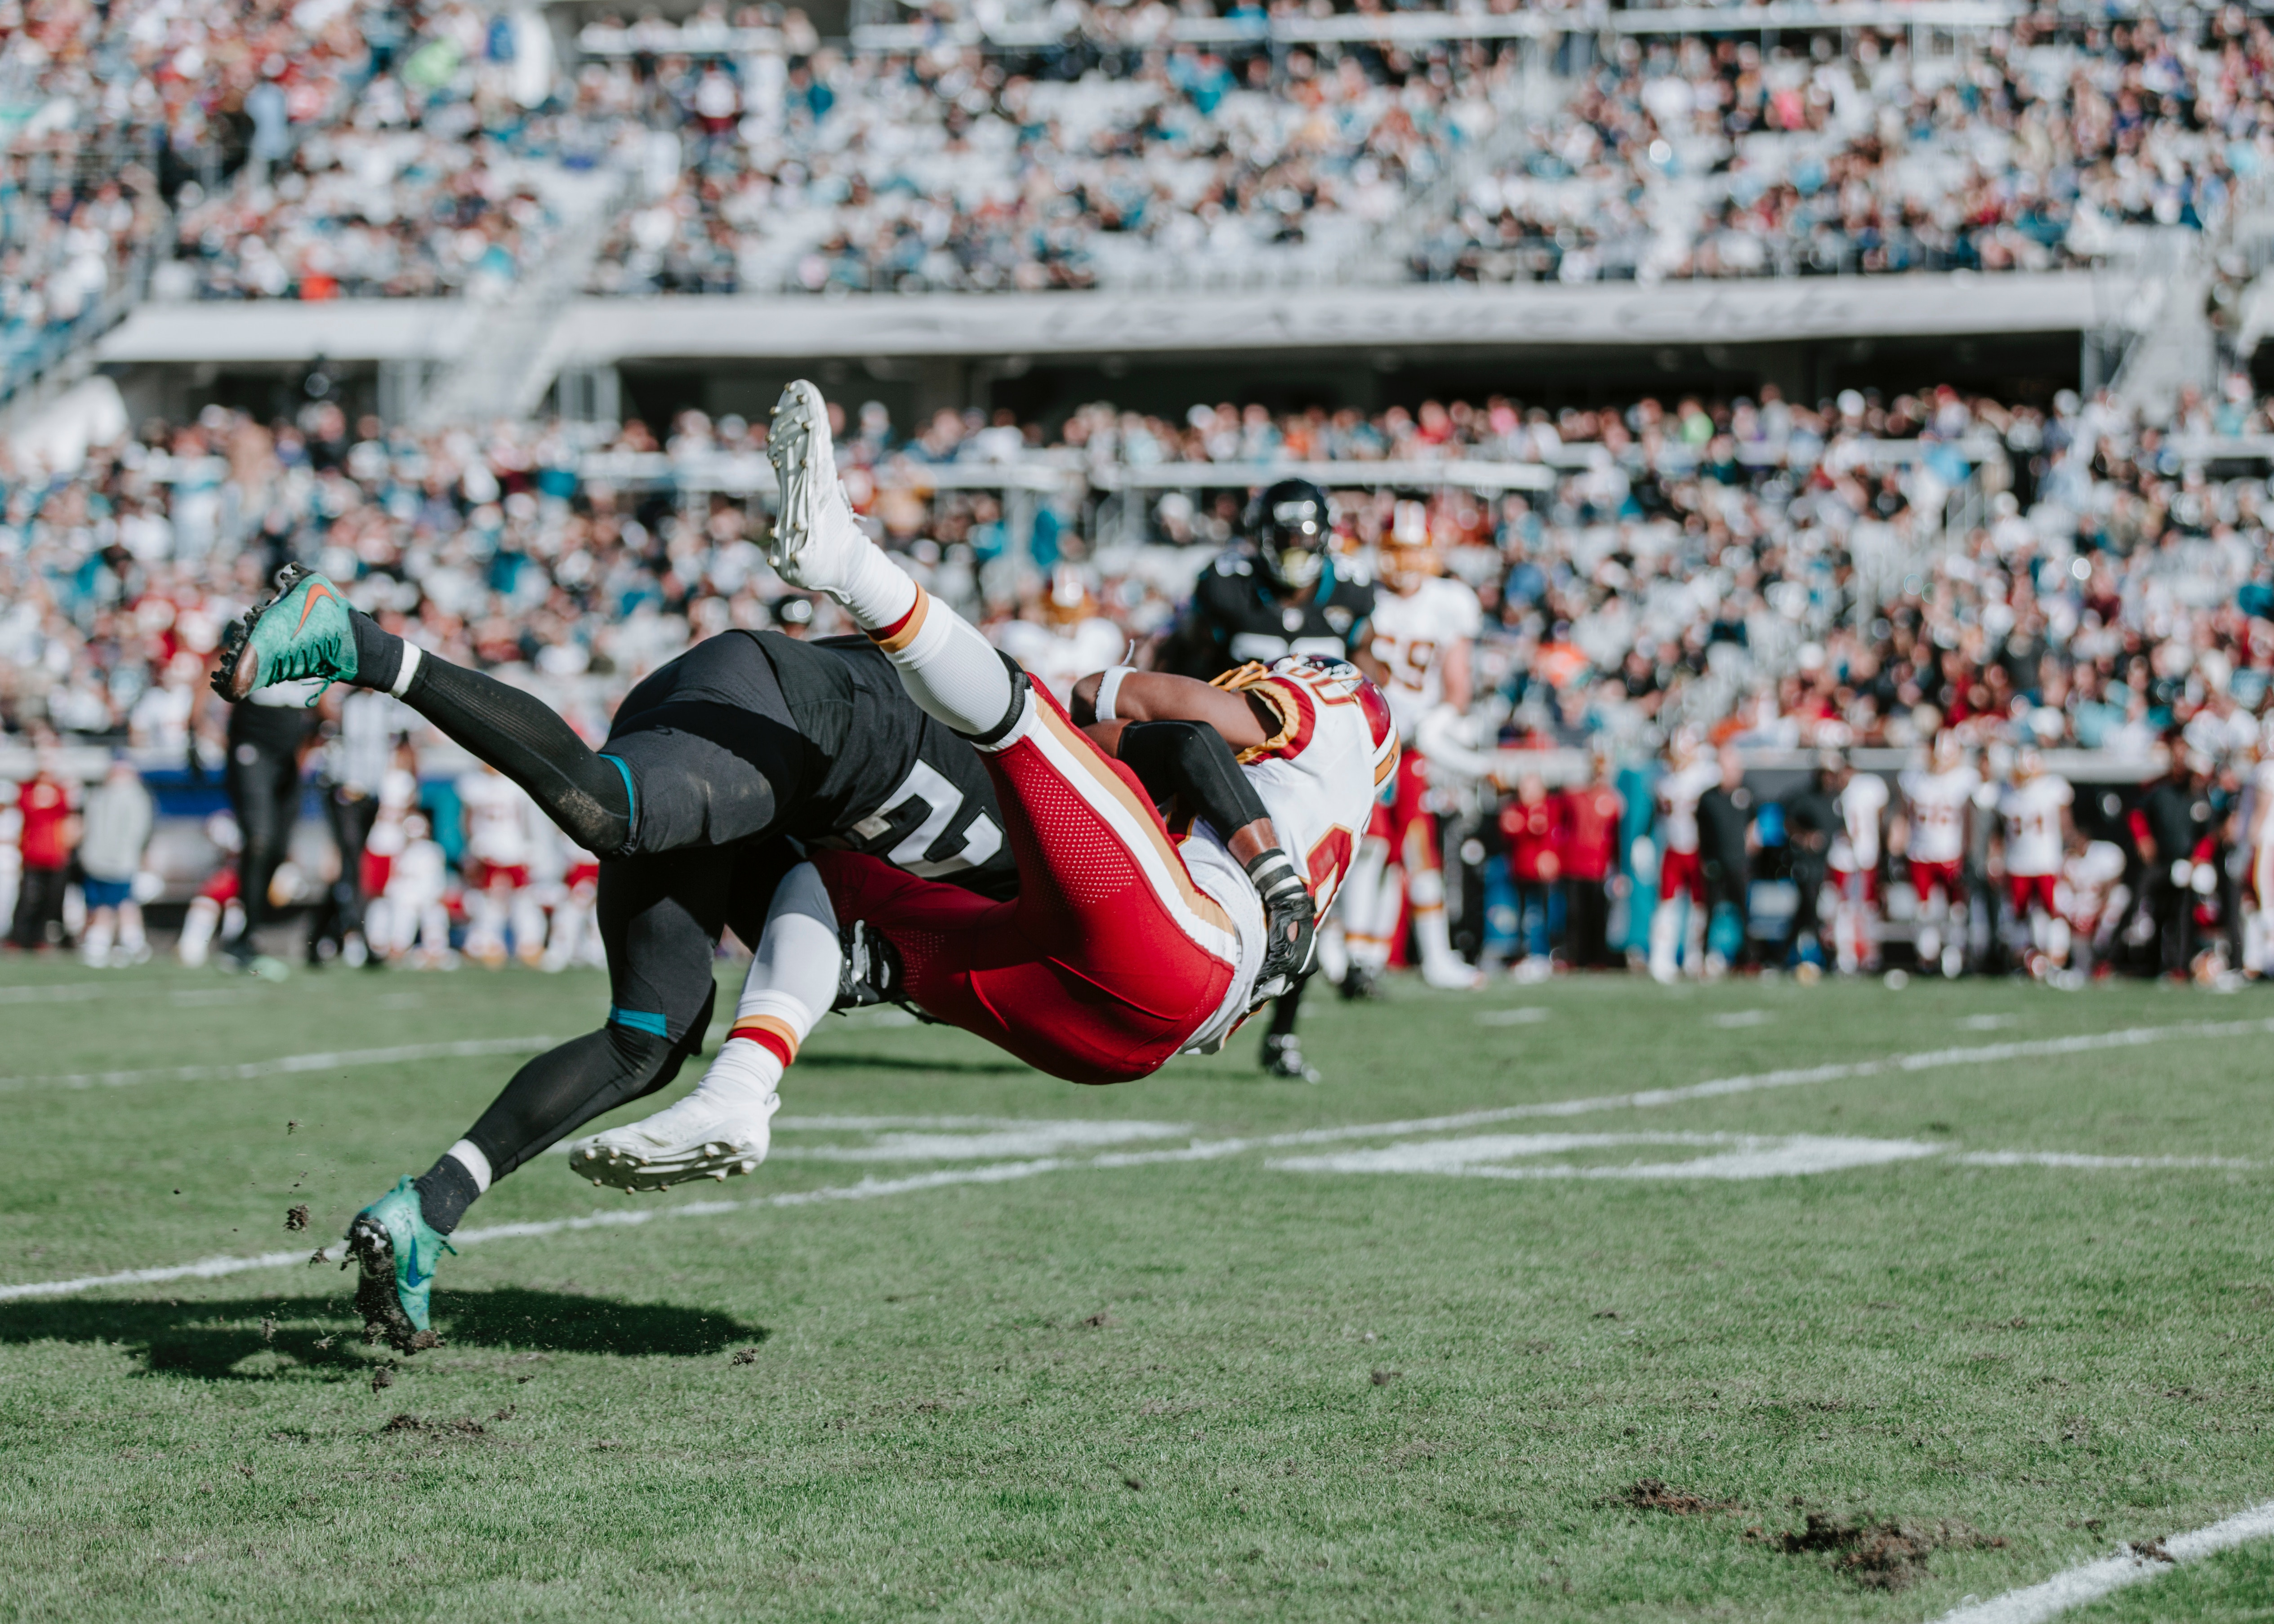 wade austin ellis 1232401 unsplash - Reduction of Concussions in Most Recent NFL Season